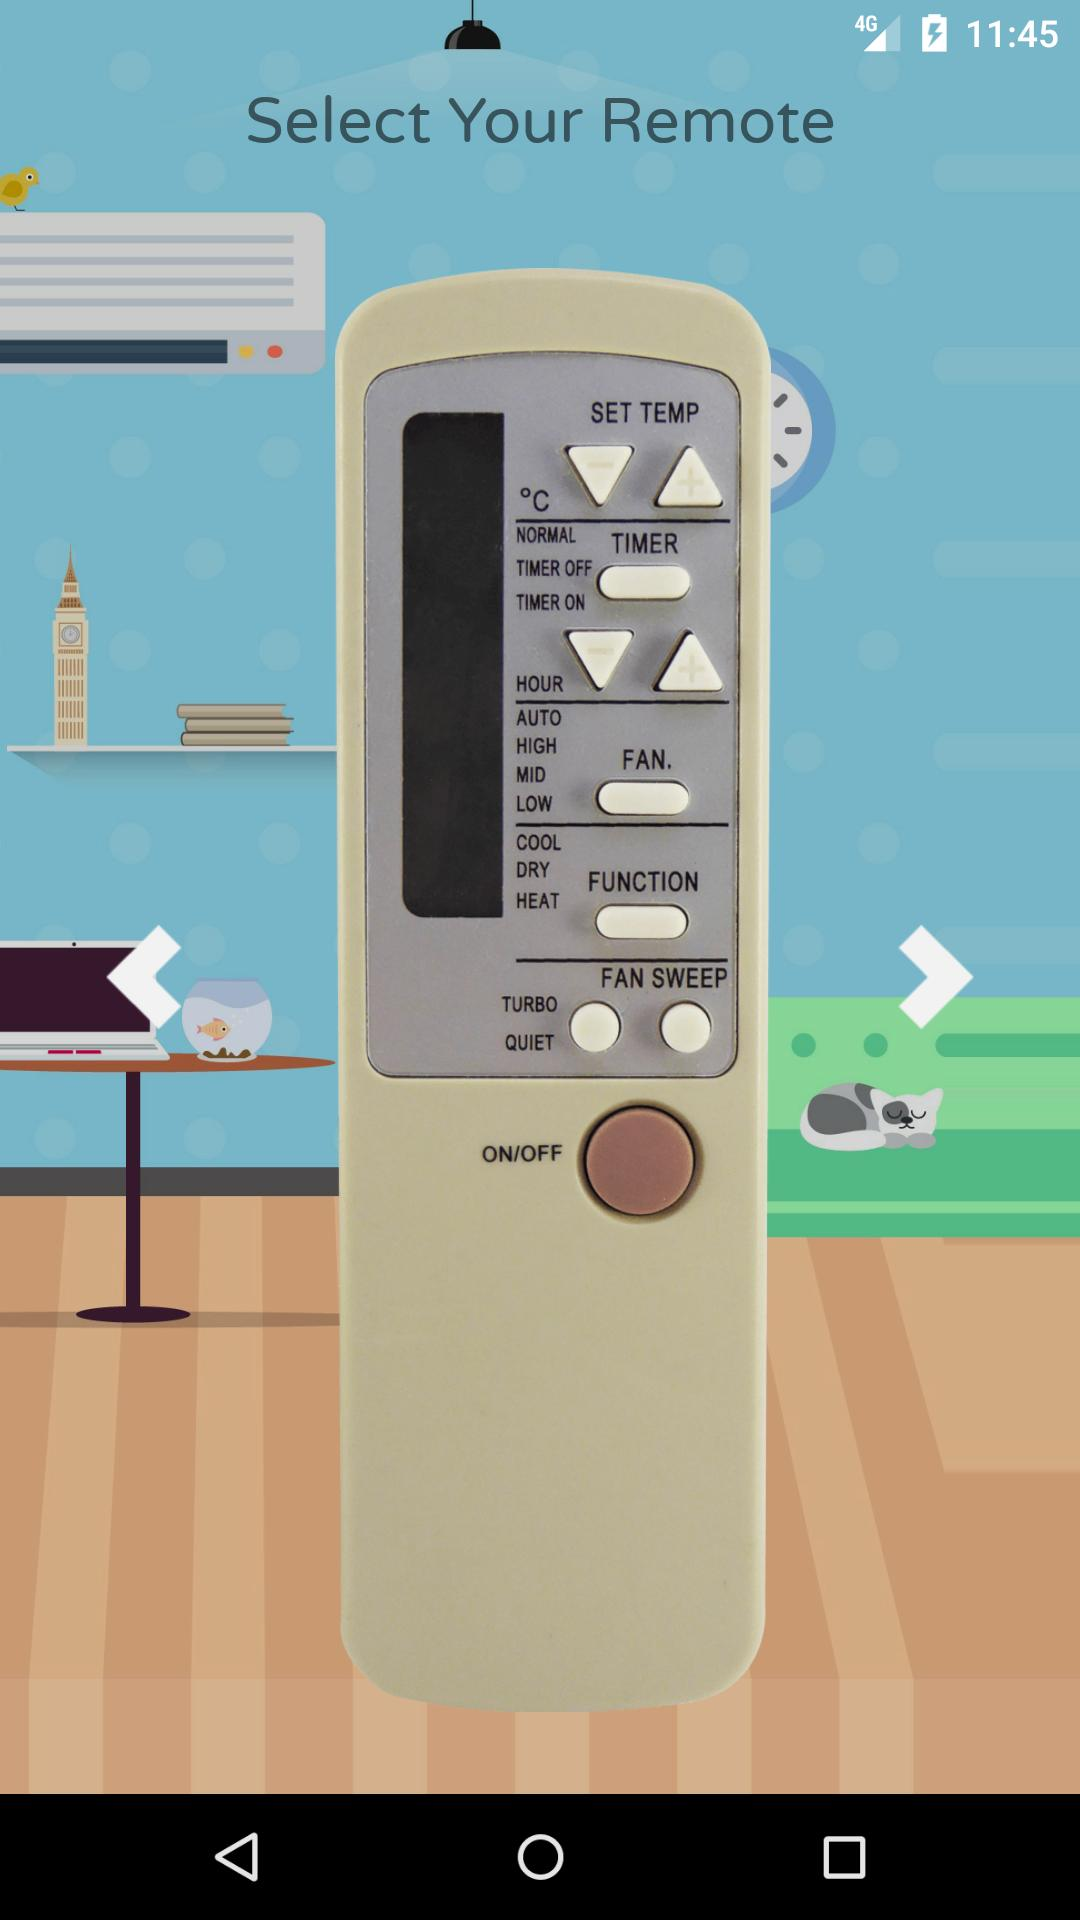 Remote Control For Haier Air Conditioner for Android - APK